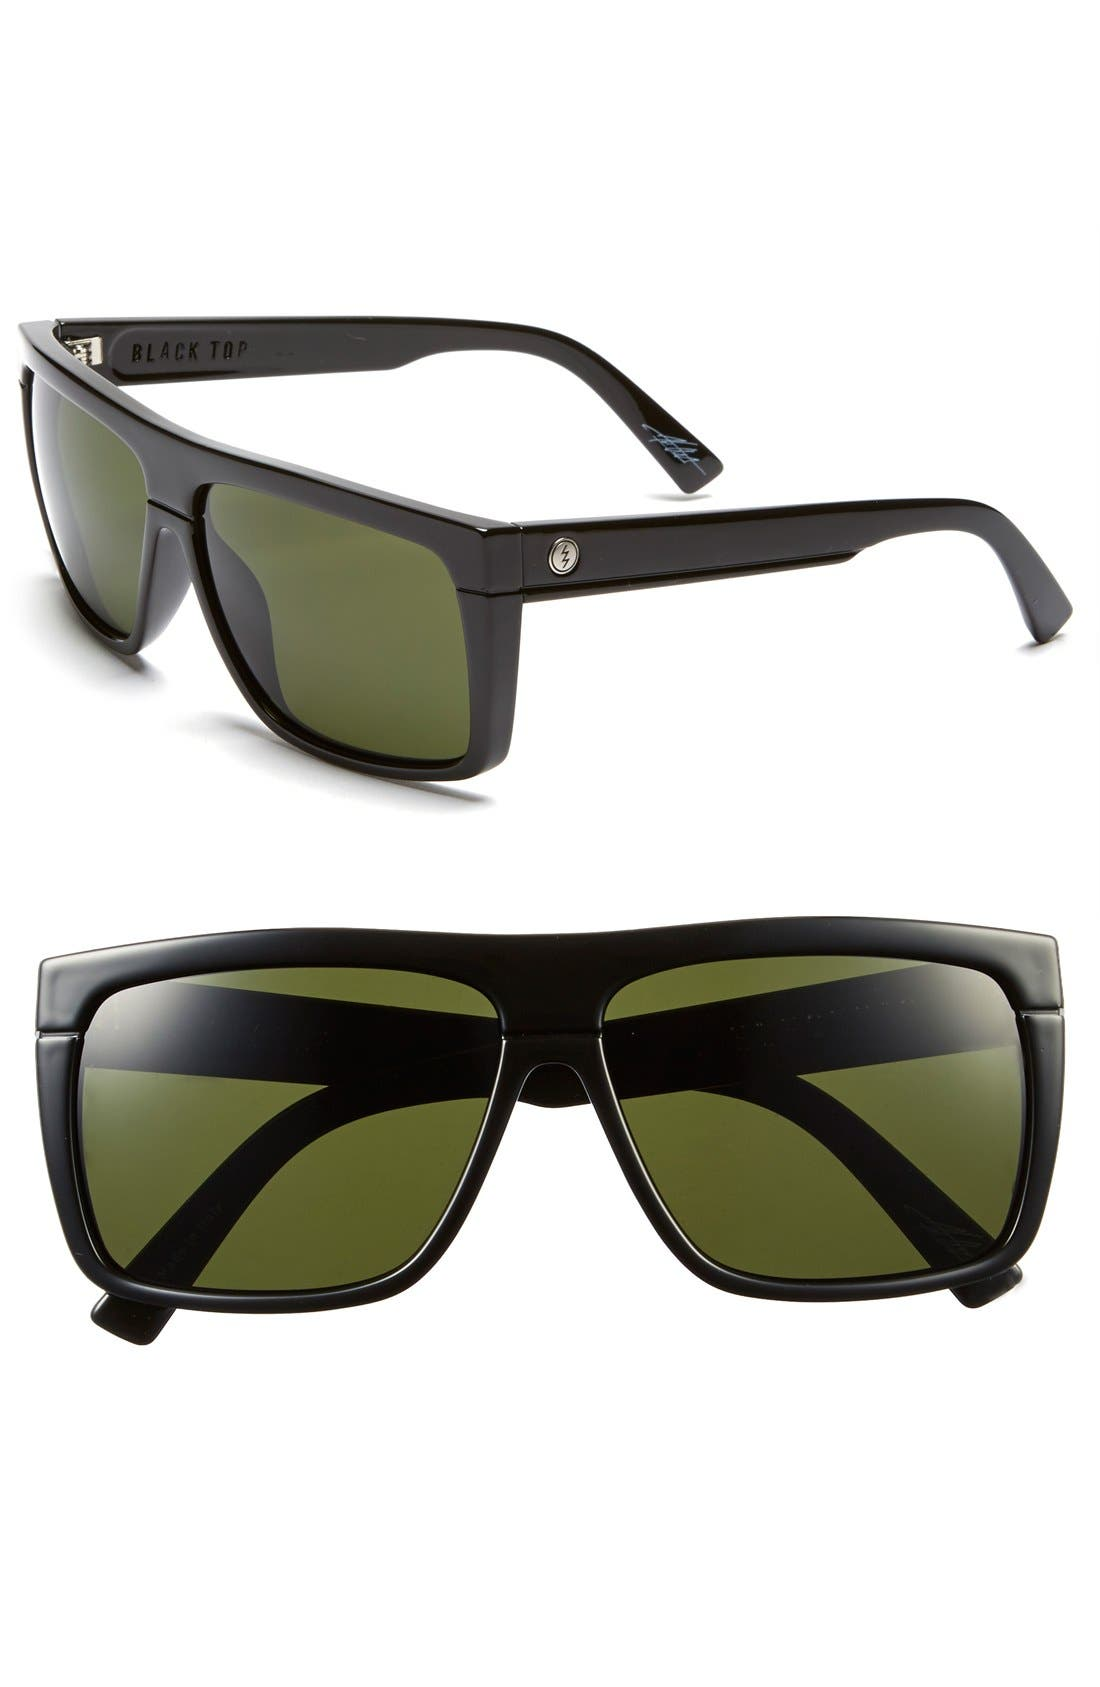 ELECTRIC 'Black Top' 61mm Flat Top Sunglasses